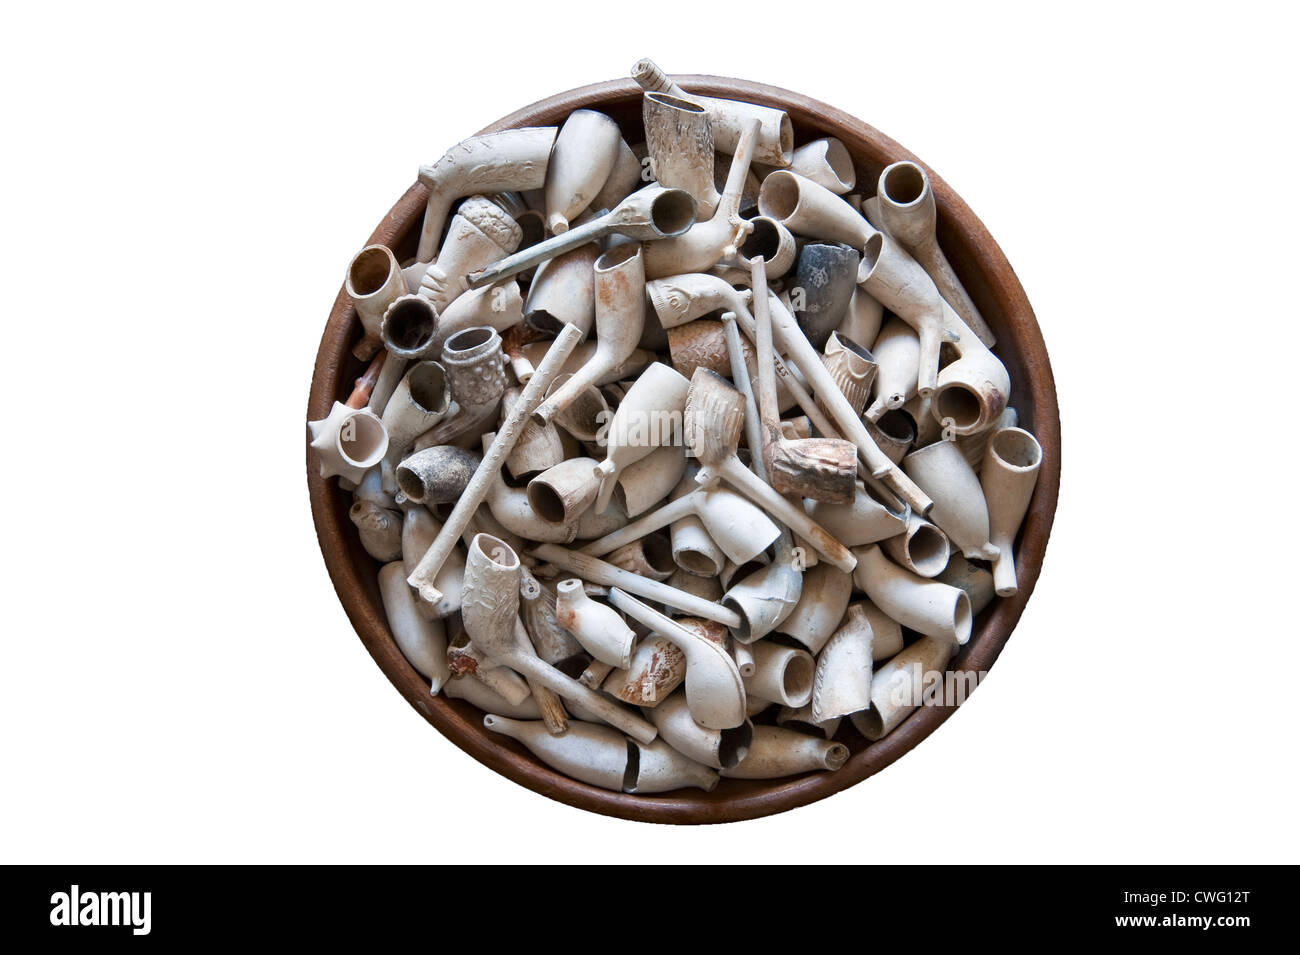 Clay tobacco pipes collected from the mud of the River Thames in London - Stock Image